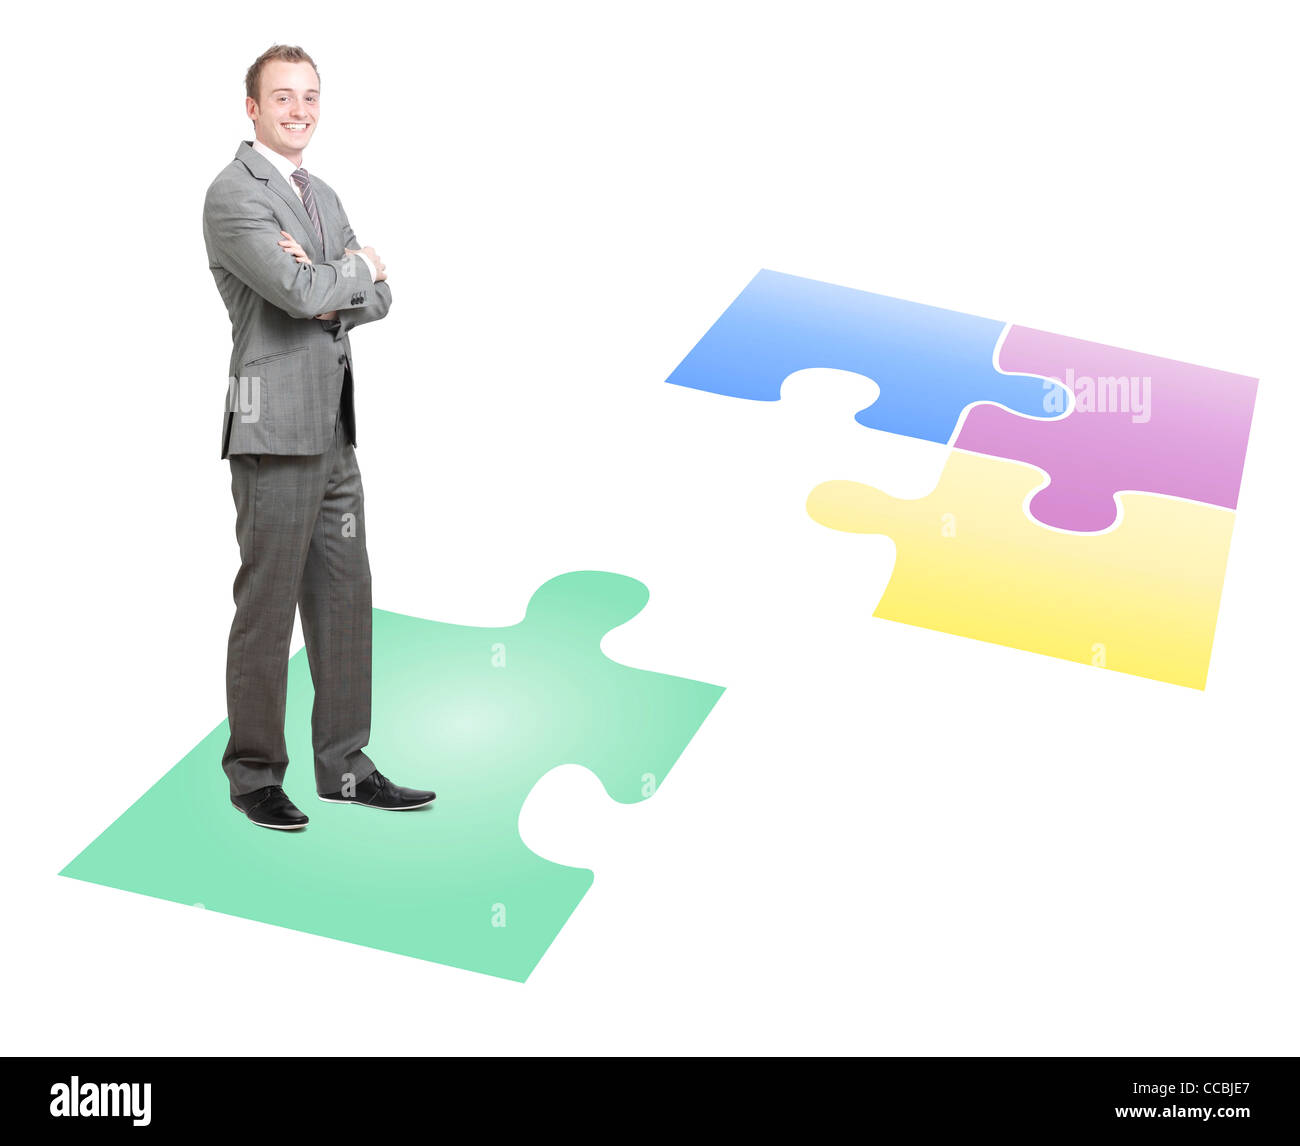 Businessman solving a puzzle - Stock Image